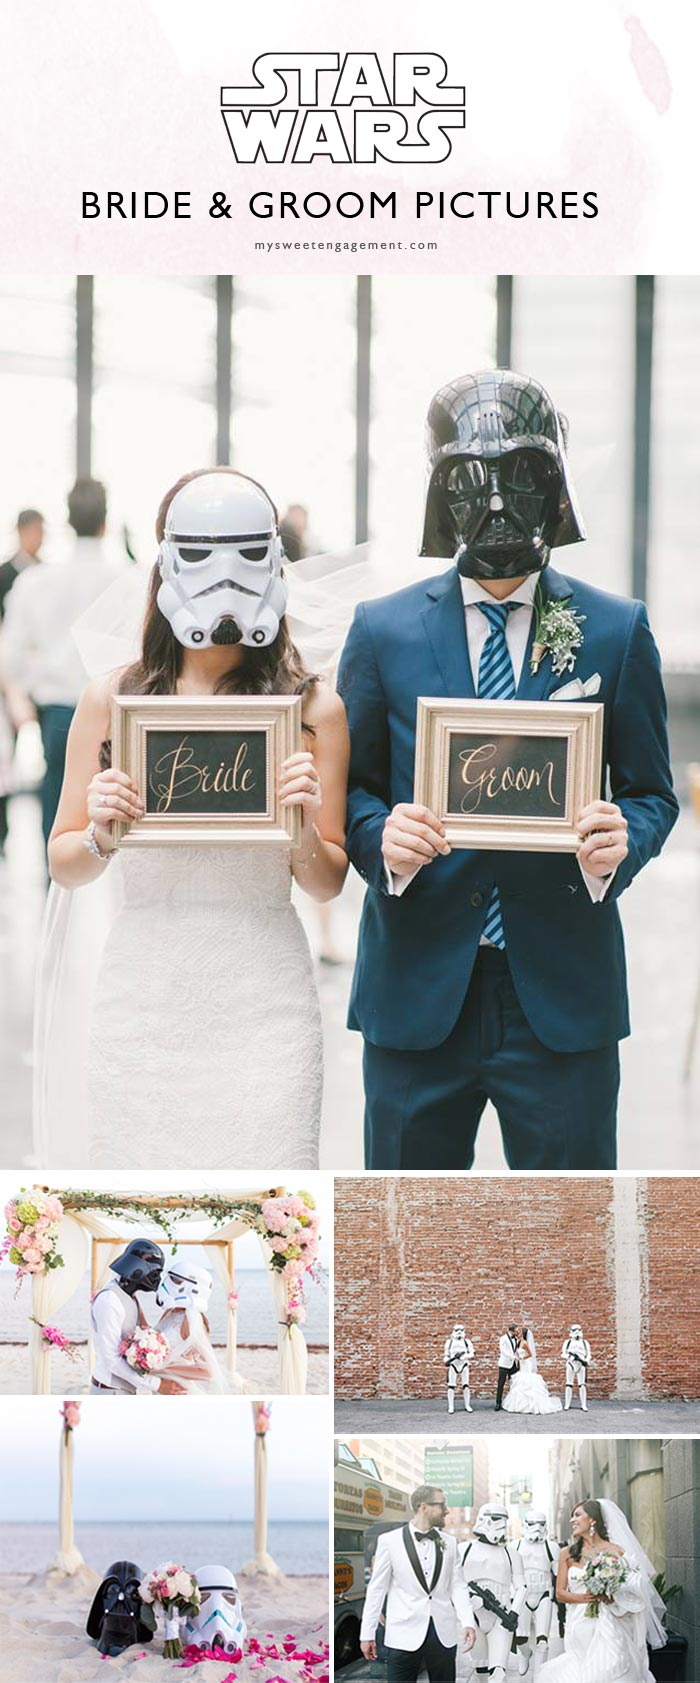 Star Wars Wedding Ideas to PIN Right Now • My Sweet Engagement ❤️